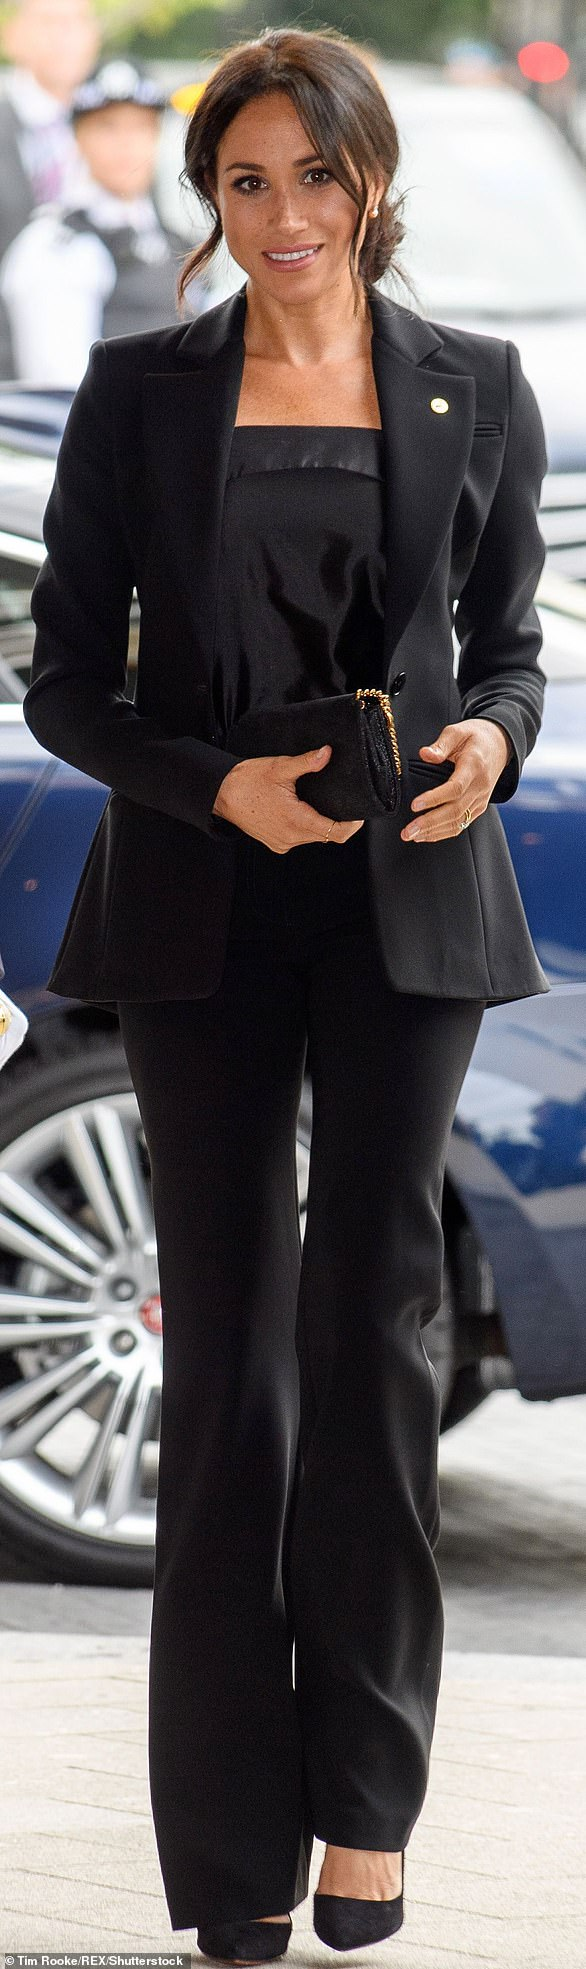 dfaebe26e Meghan pinned her hair back and wore all black including a Acacia  One-Button Blazer